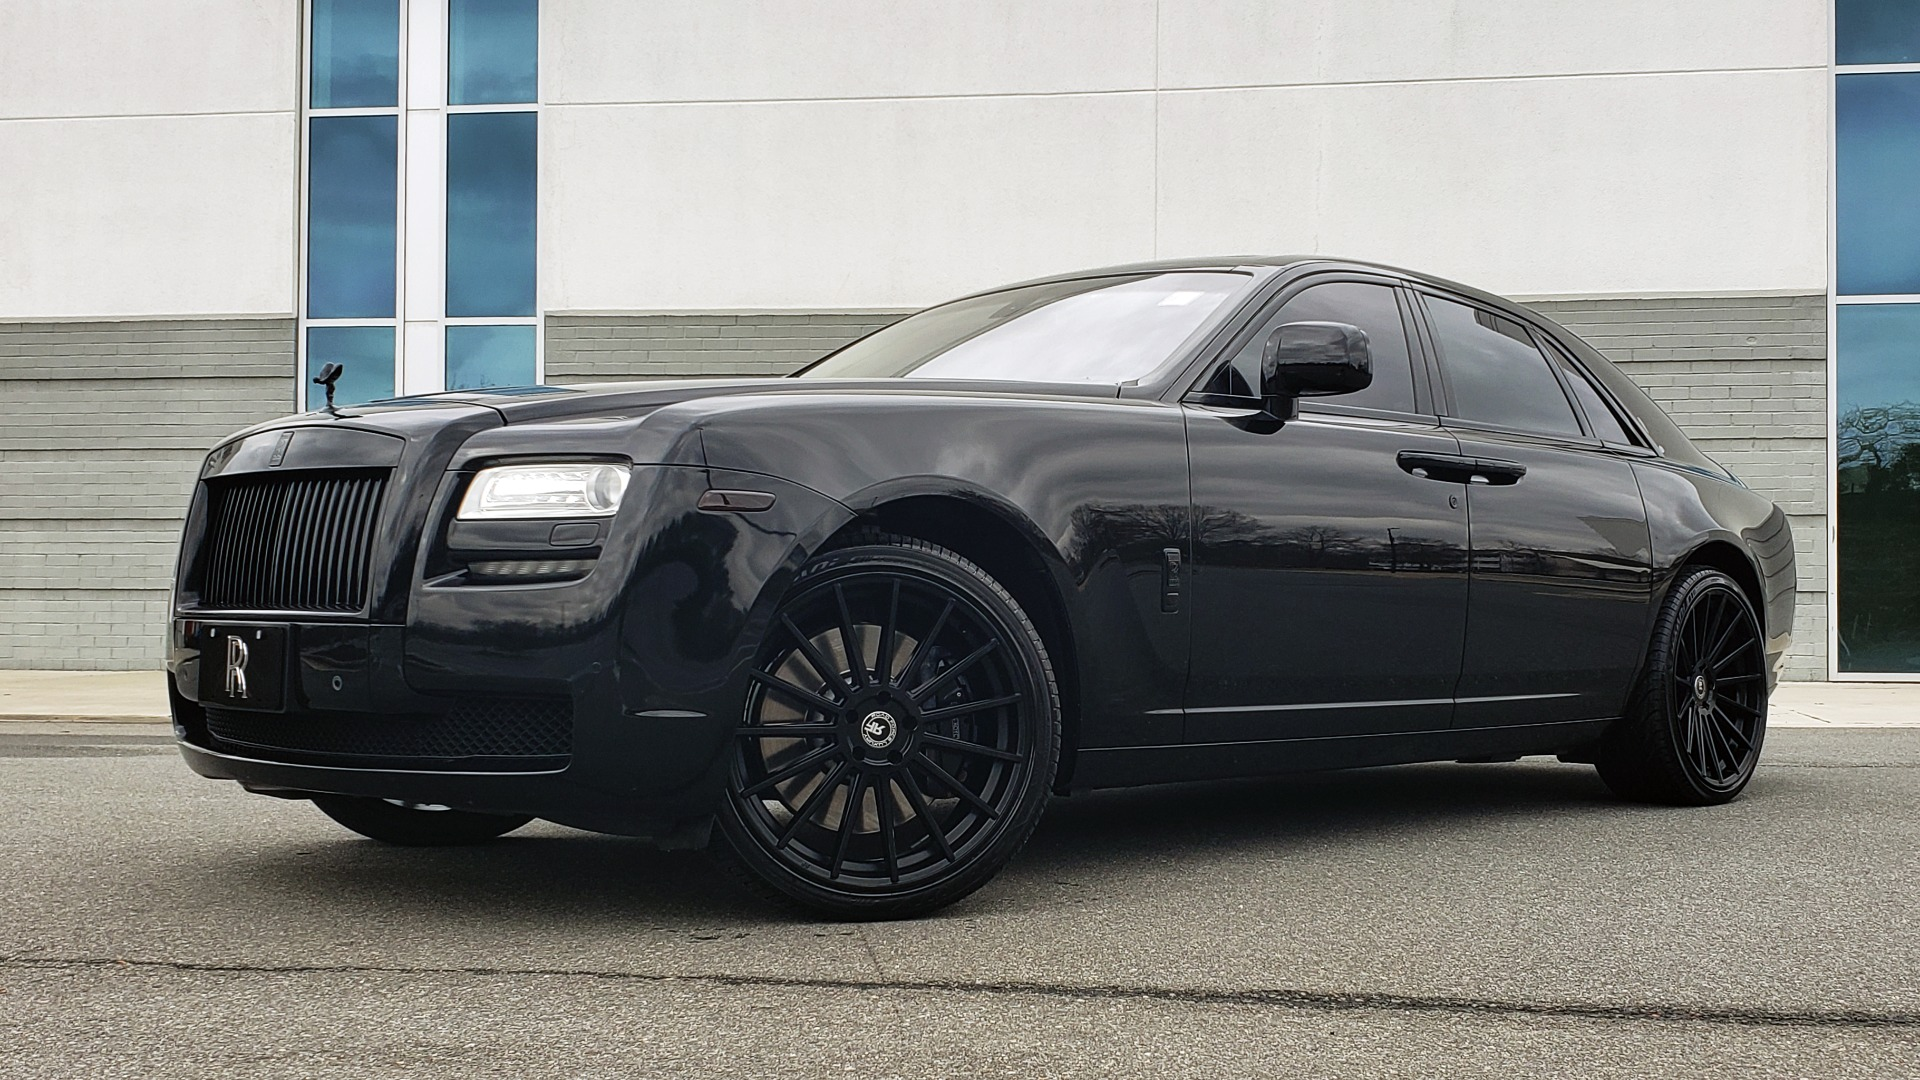 Used 2010 Rolls-Royce GHOST 6.6L TURBO V12 (563HP) / NAV / SUNROOF / SUICIDE DOORS for sale $89,000 at Formula Imports in Charlotte NC 28227 2